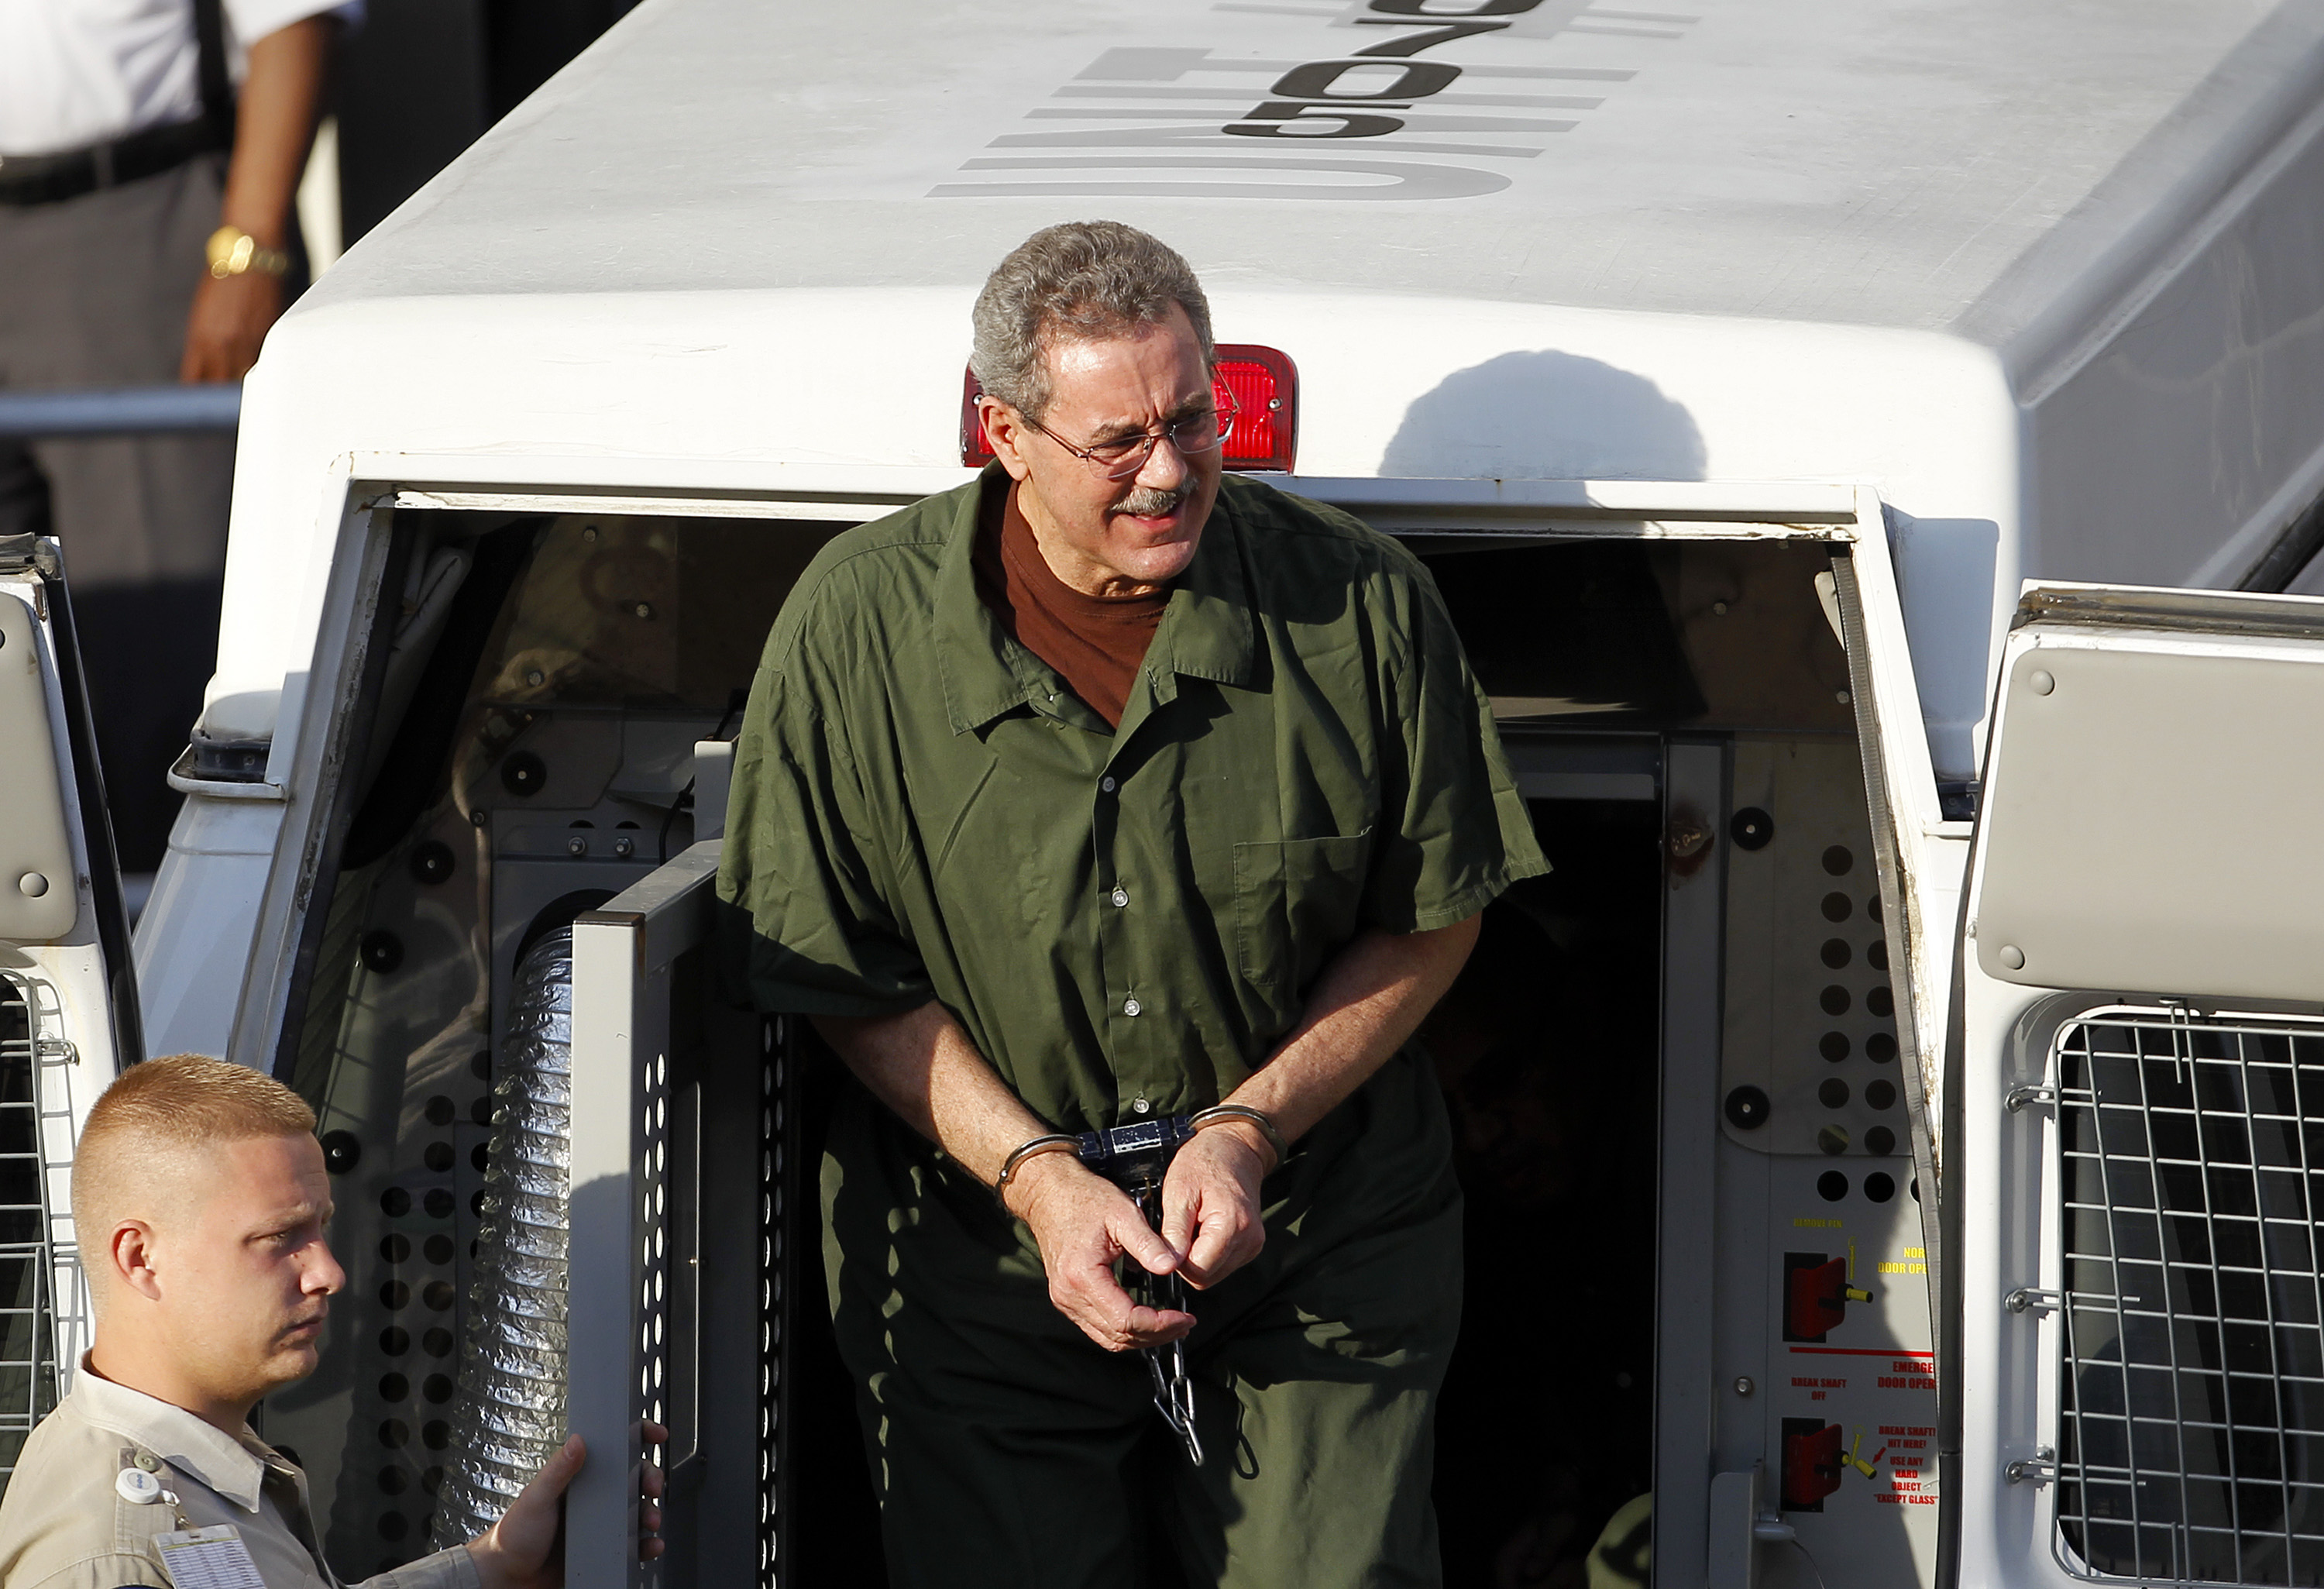 Allen Stanford Faces Possible Life Sentence for $7 Billion Fraud